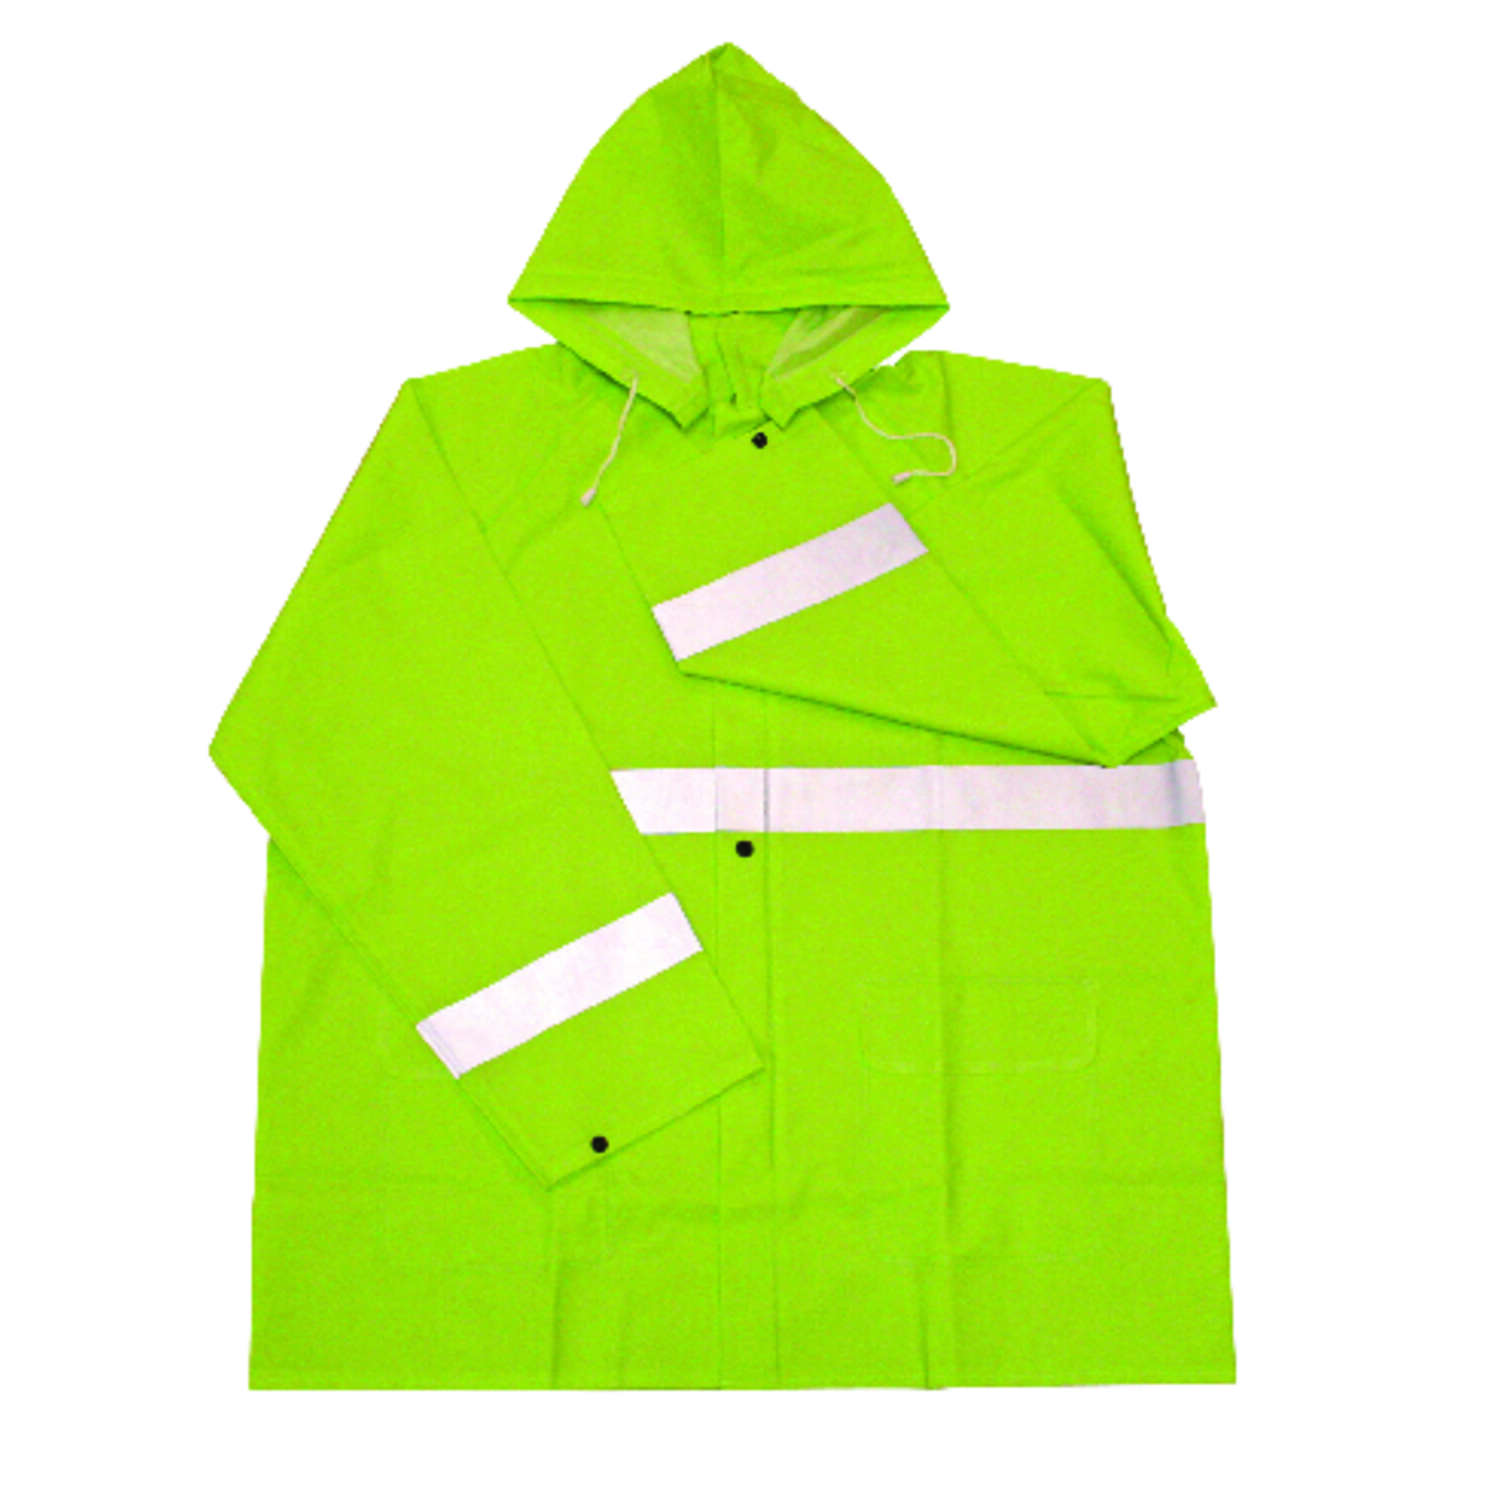 Boss  Green  PVC  Rain Jacket  L